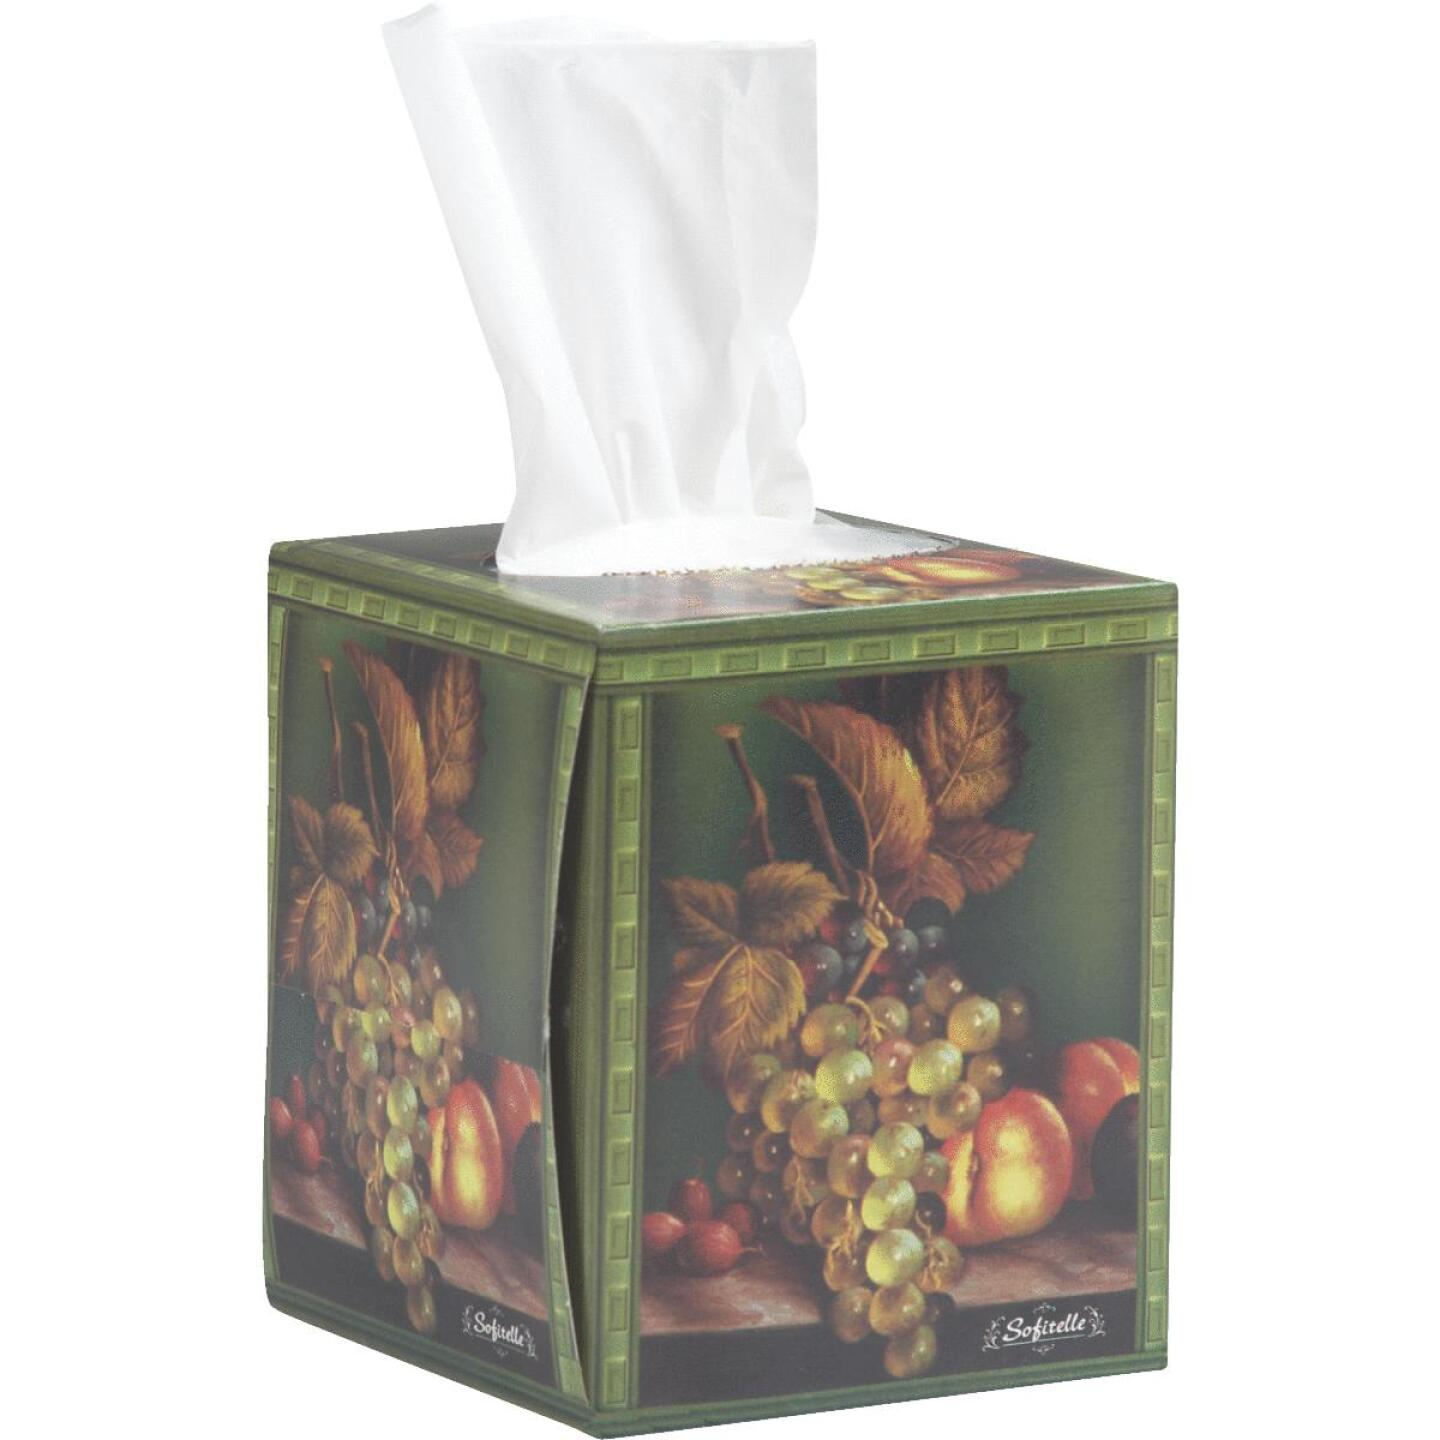 Royal Paper 85 Count Premium Facial Tissues Image 1